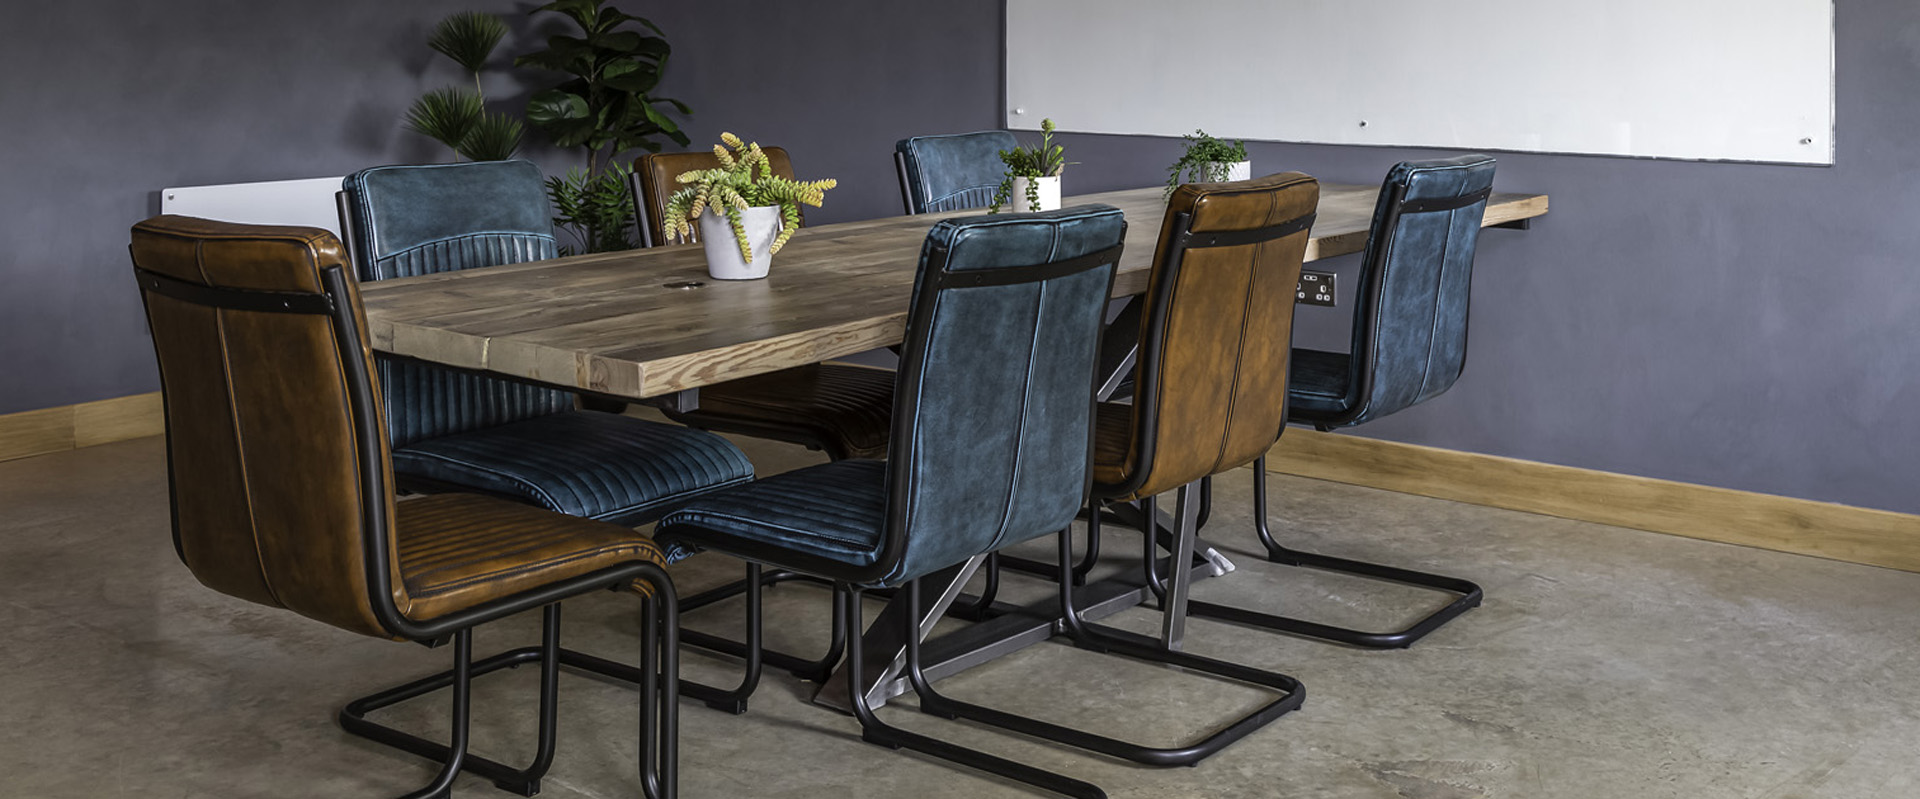 rustic and concrete style office interior